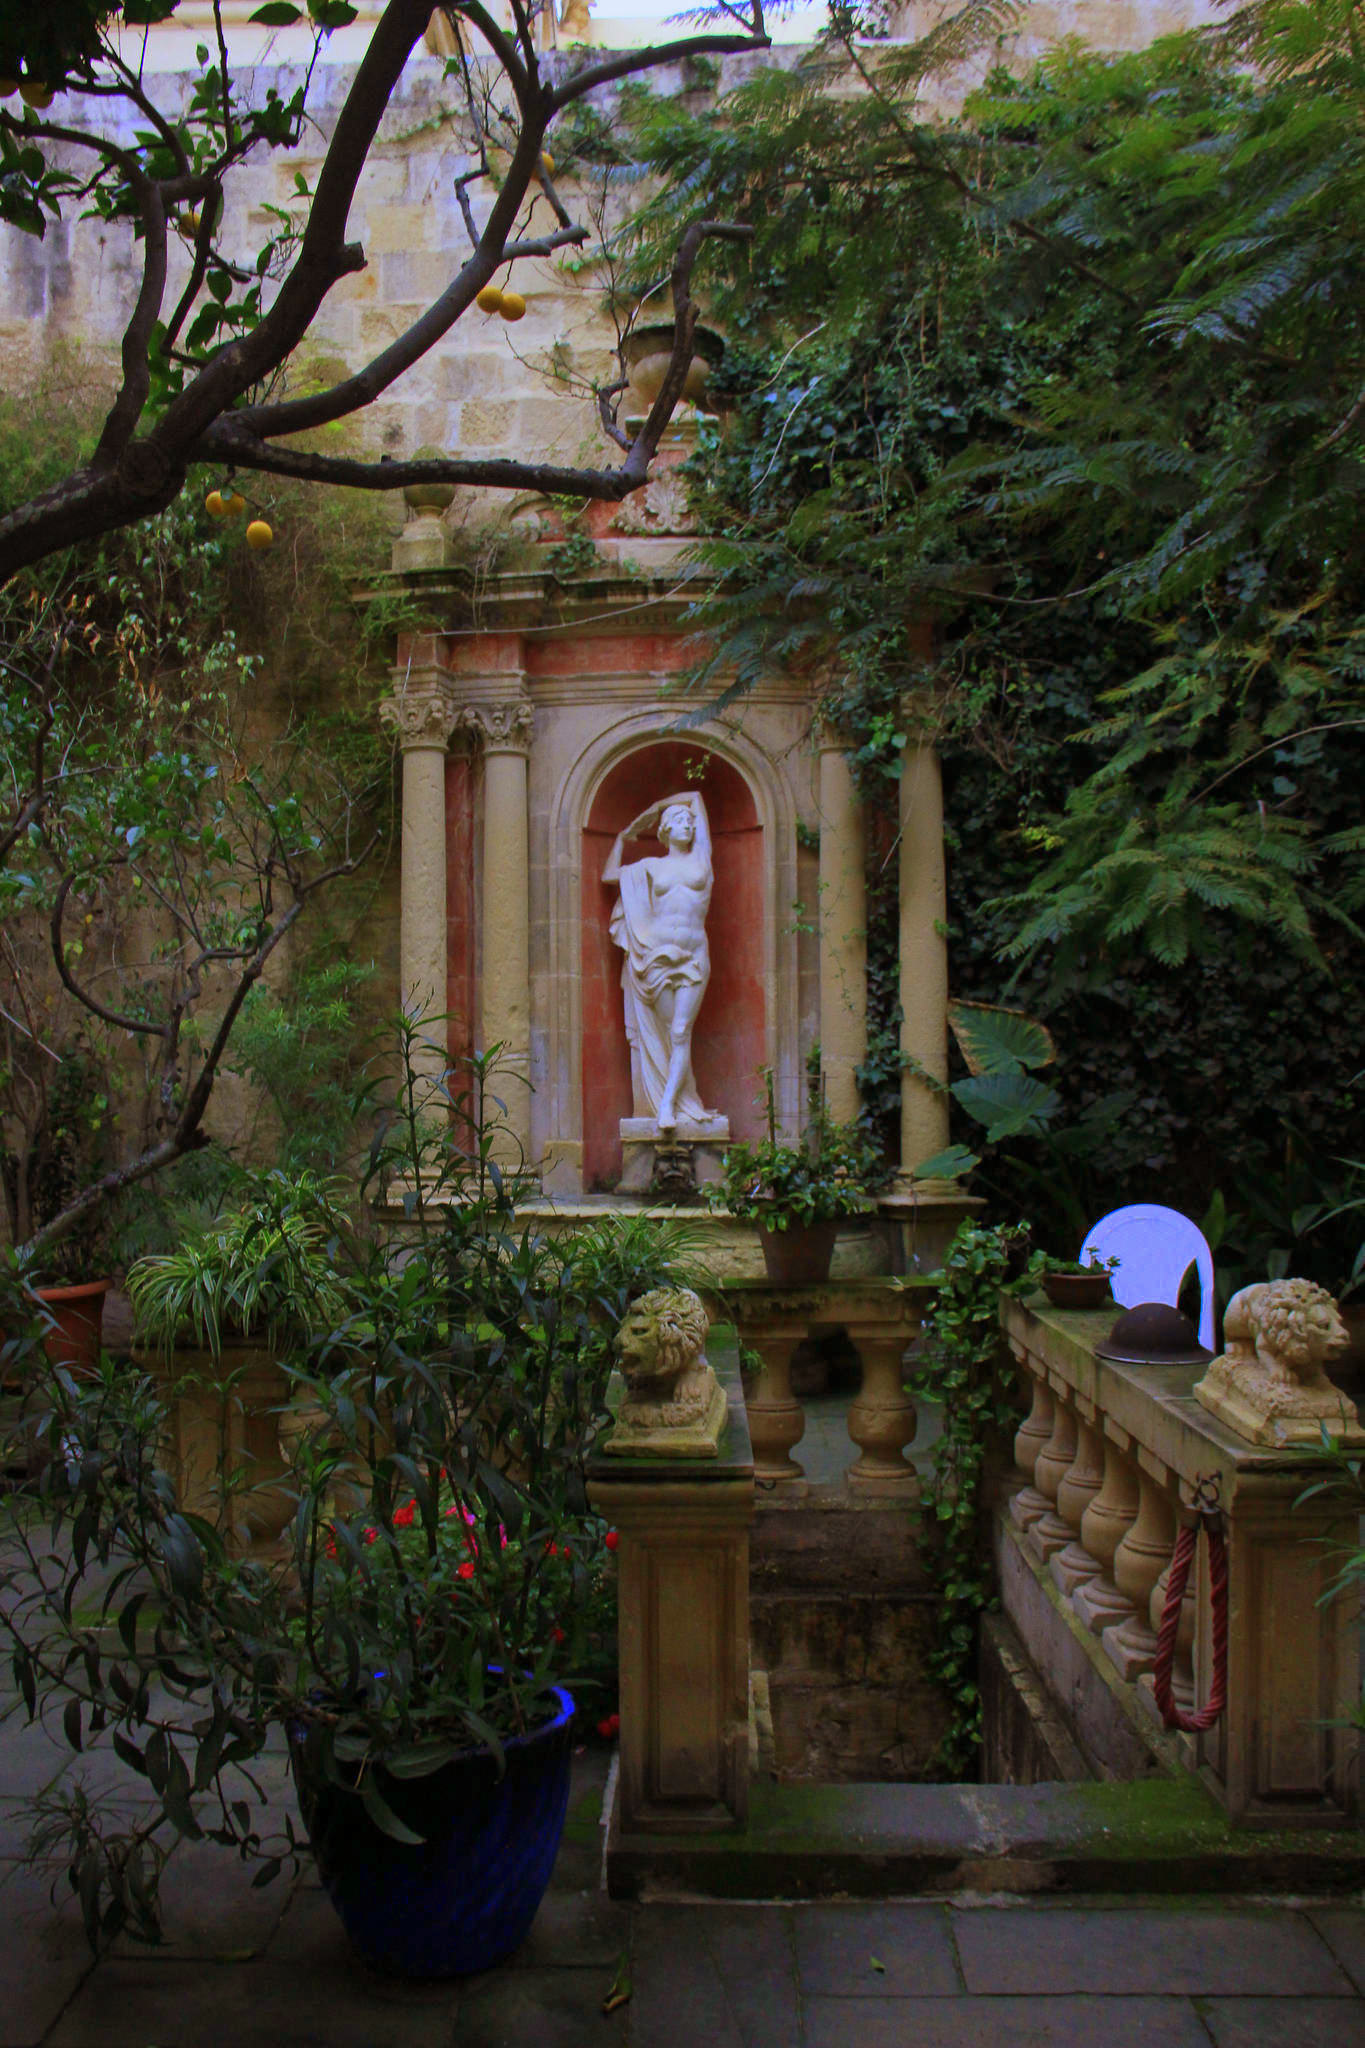 The Casa Picolla of Valletta has a lovely garden